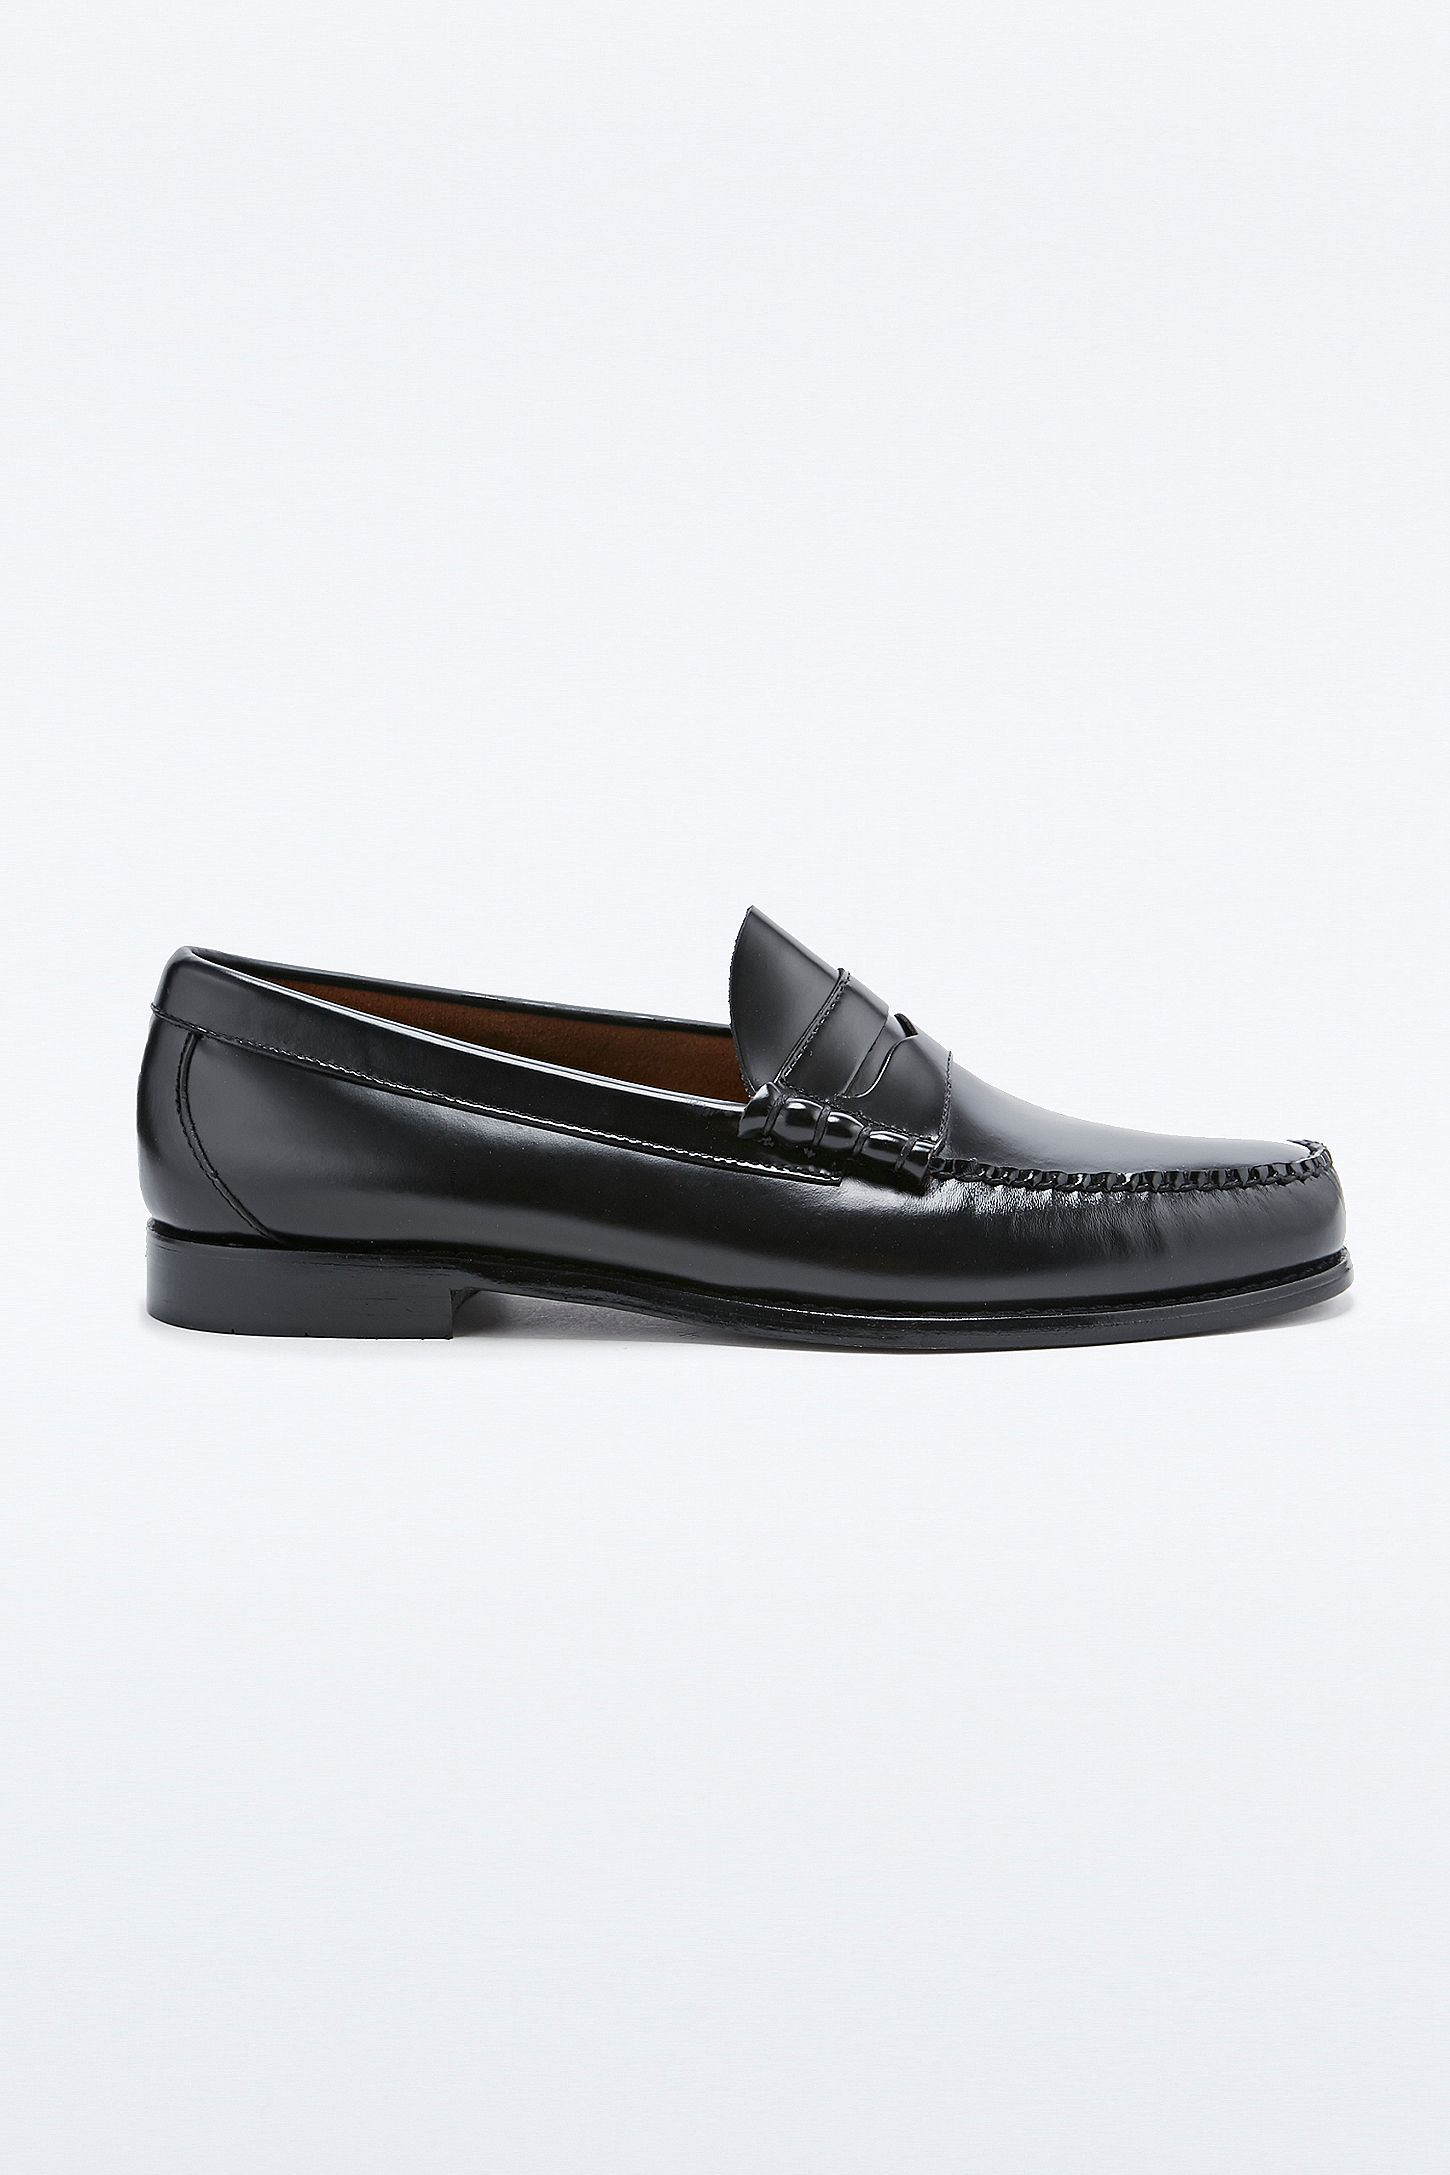 699657db615 Bass Weejuns Larson Penny Loafers in Black